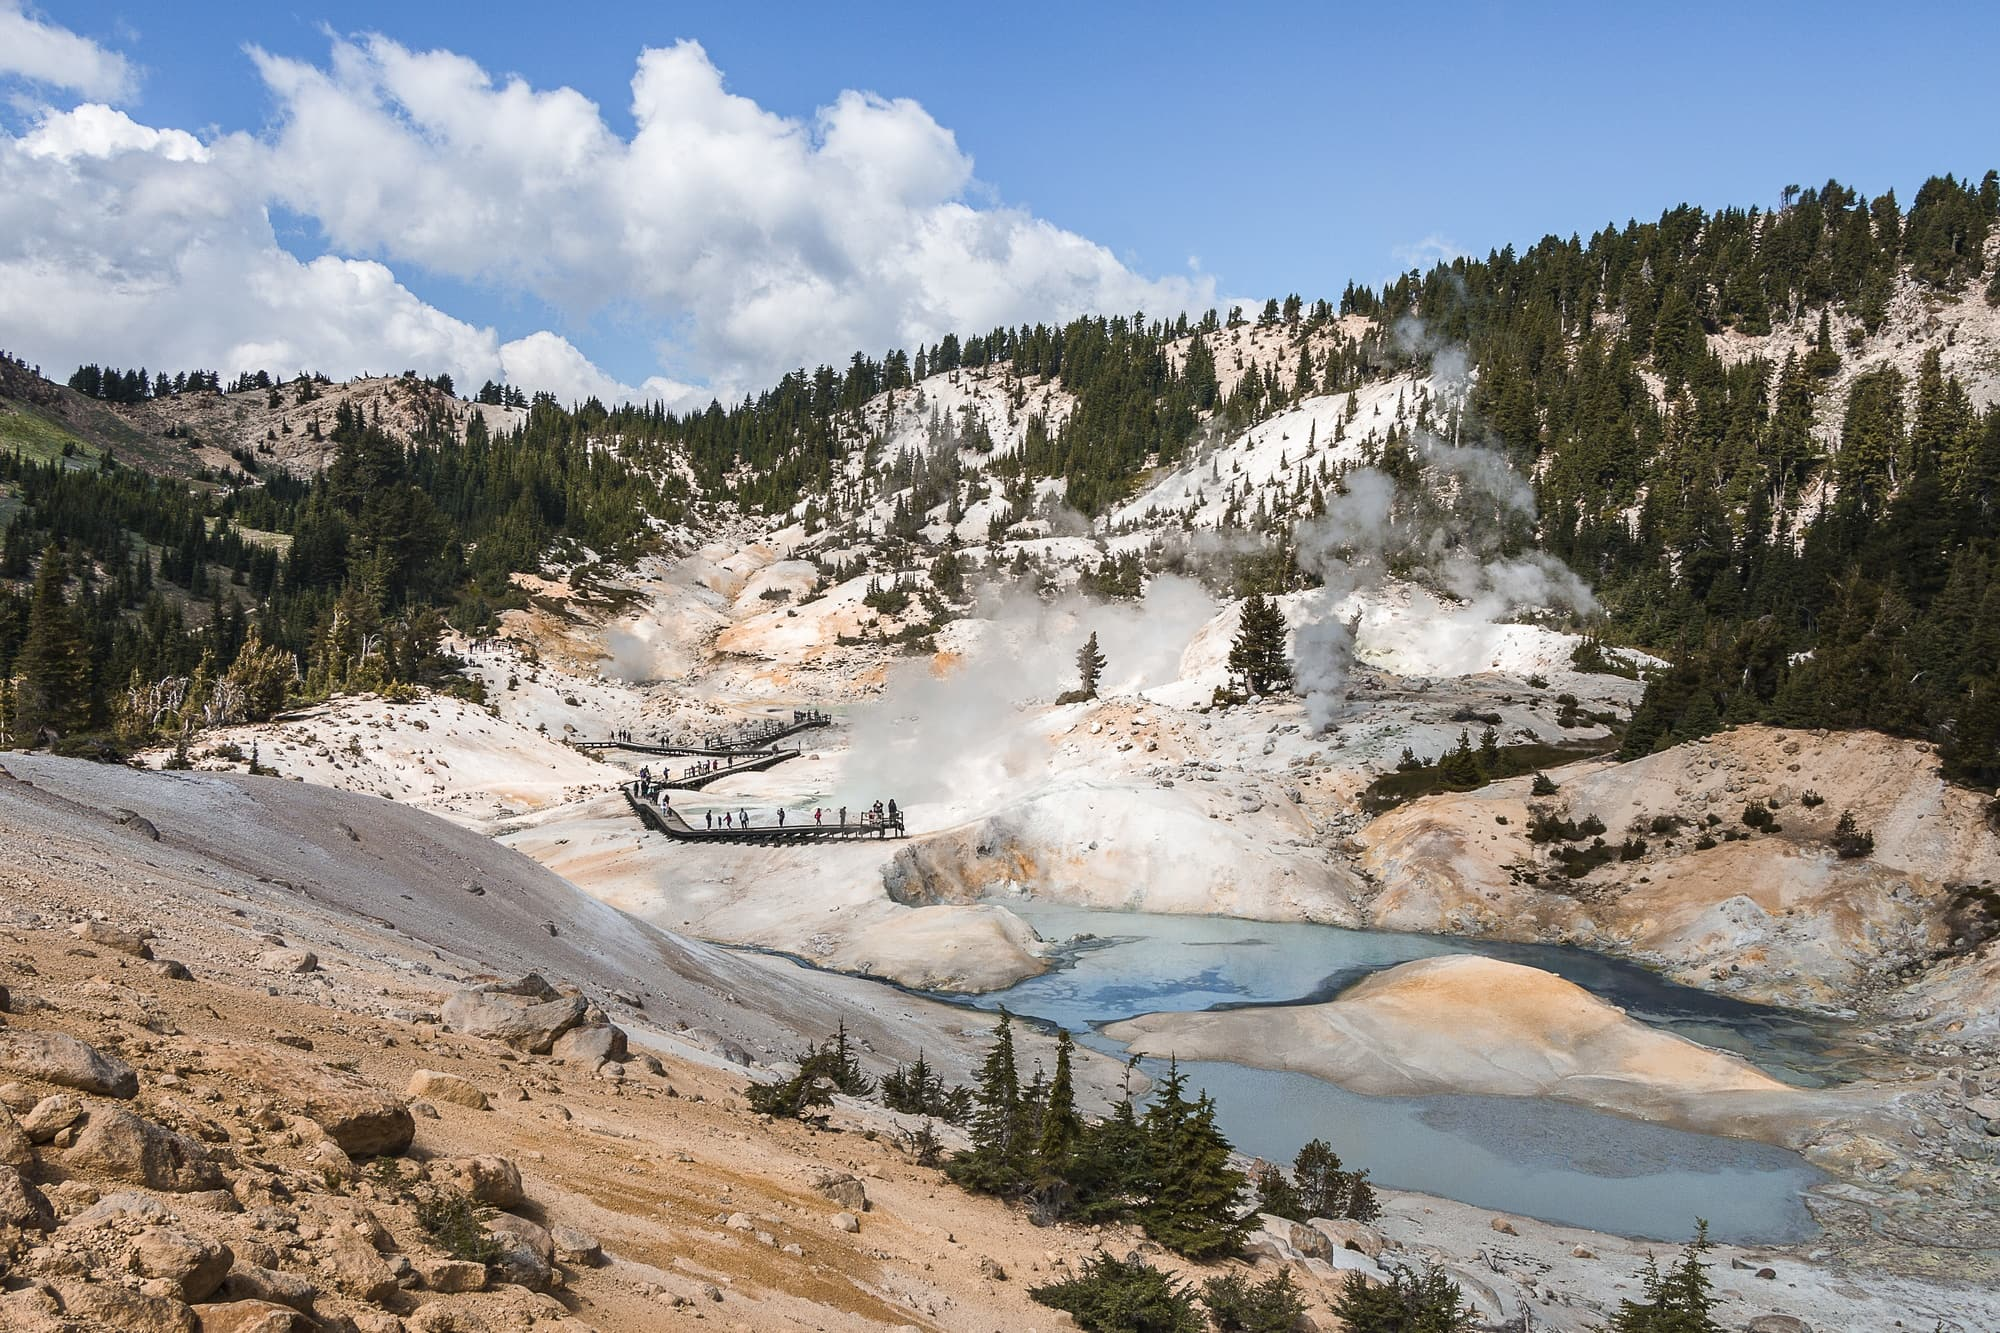 Plan your Lassen National Park hikes with our roundup of the best hikes, including boiling hot pots, alpine lakes, and big summits.